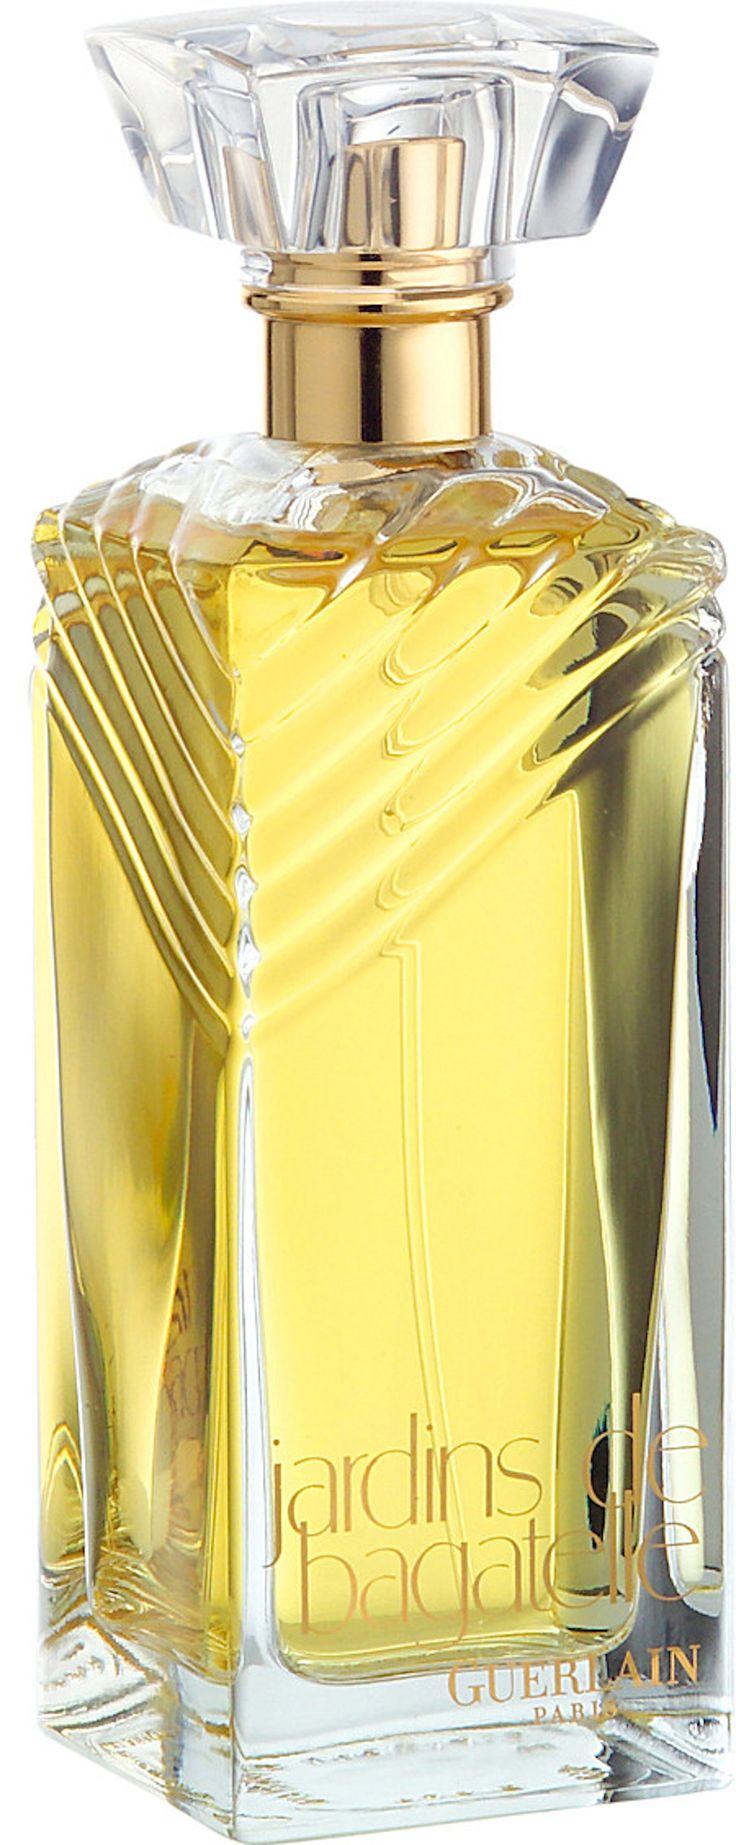 100 Best Images About Perfumes For Her On Pinterest